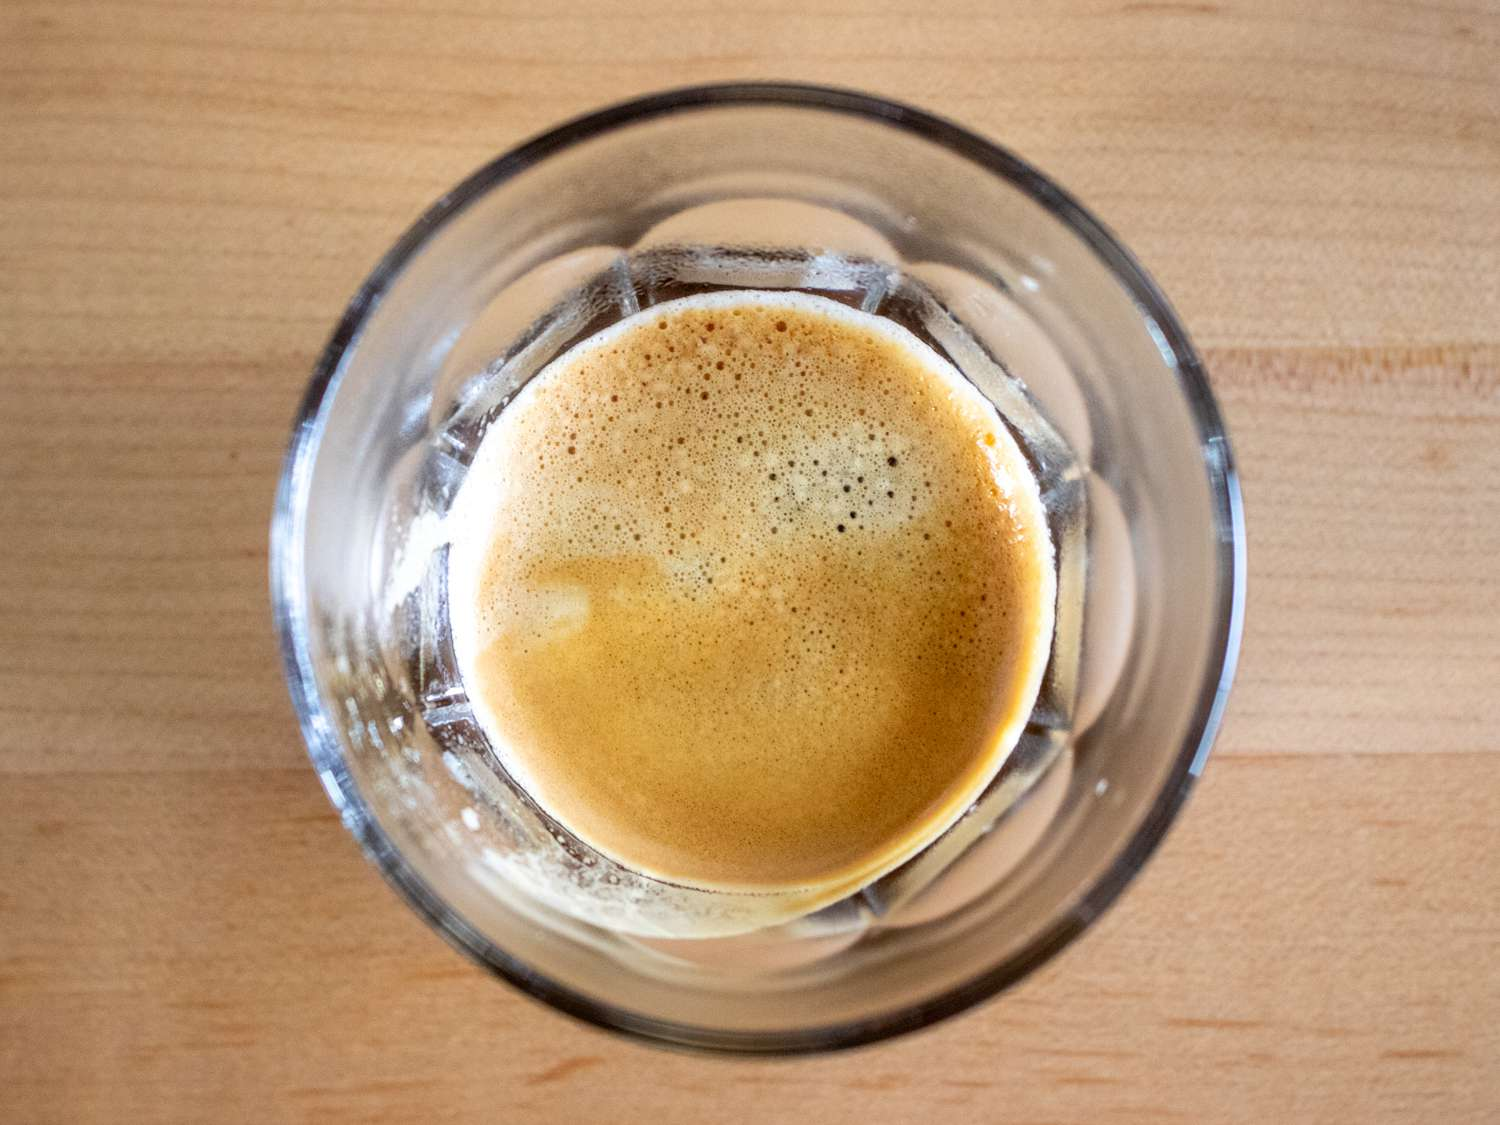 an overhead photo of a shot of espresso in a glass cup